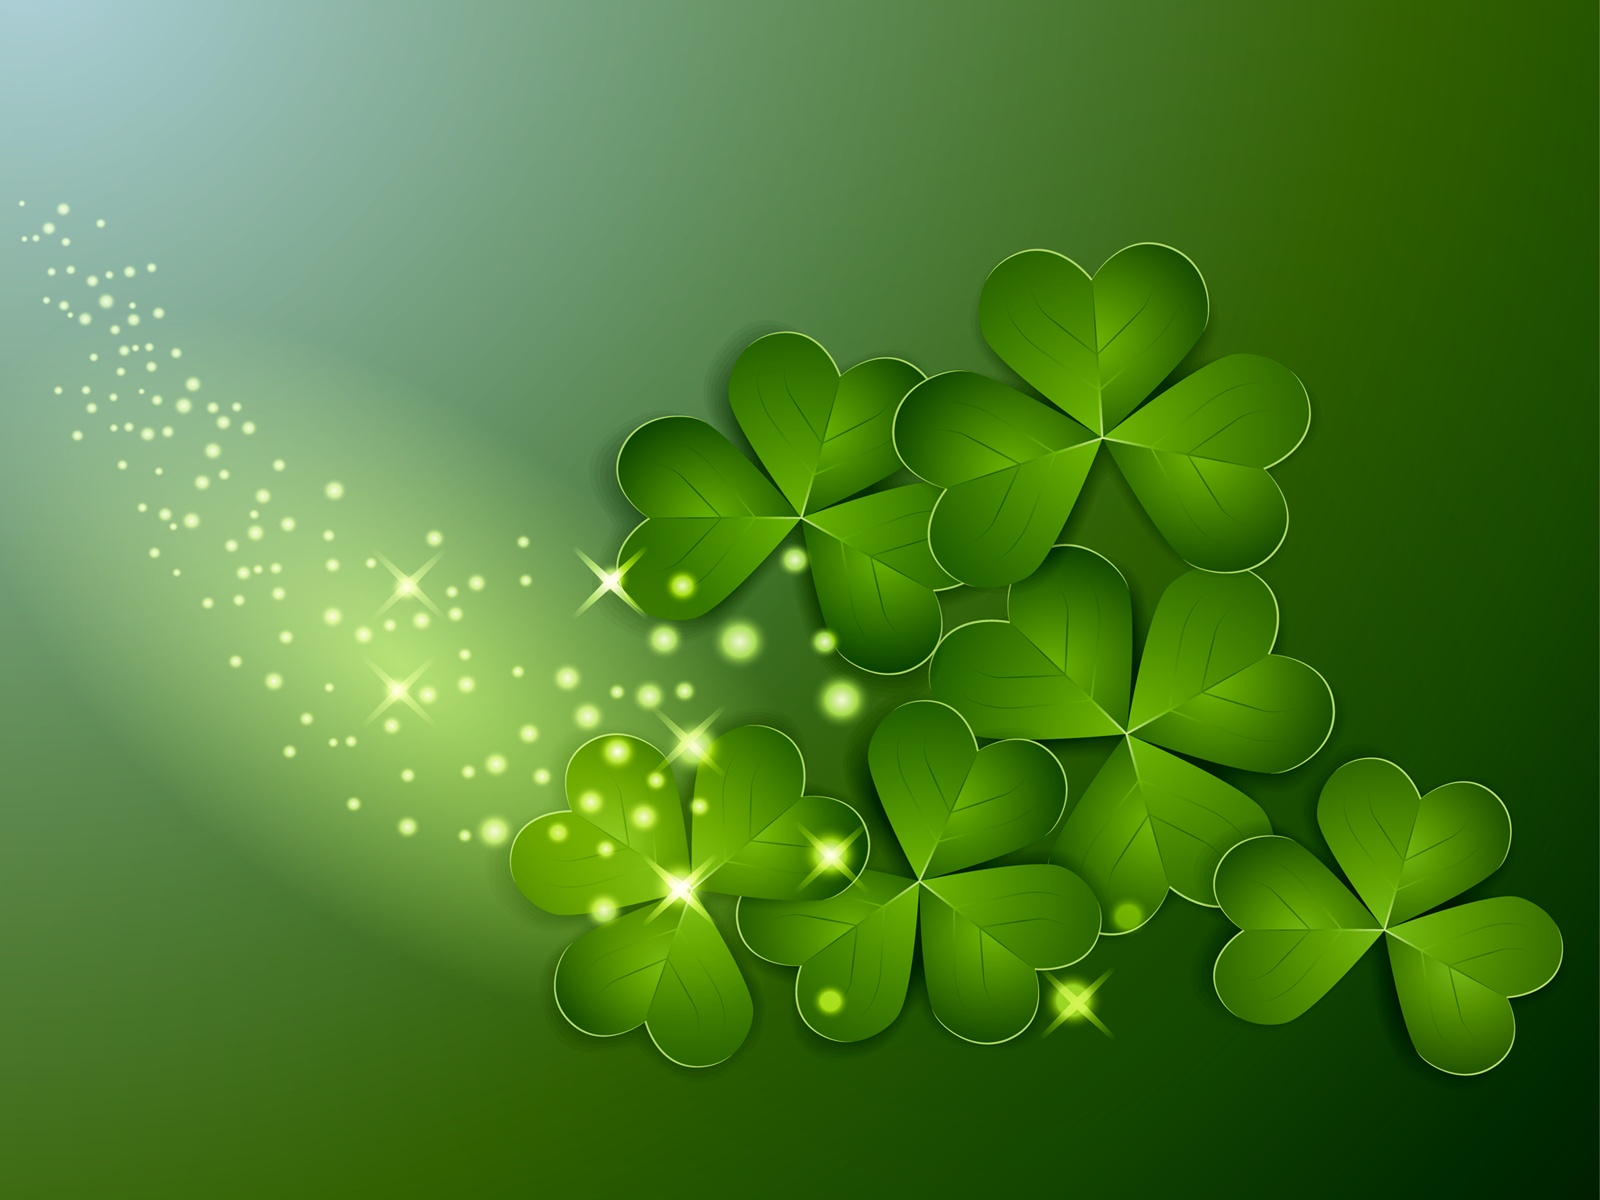 48 Wallpaper St Patrick S Day On Wallpapersafari